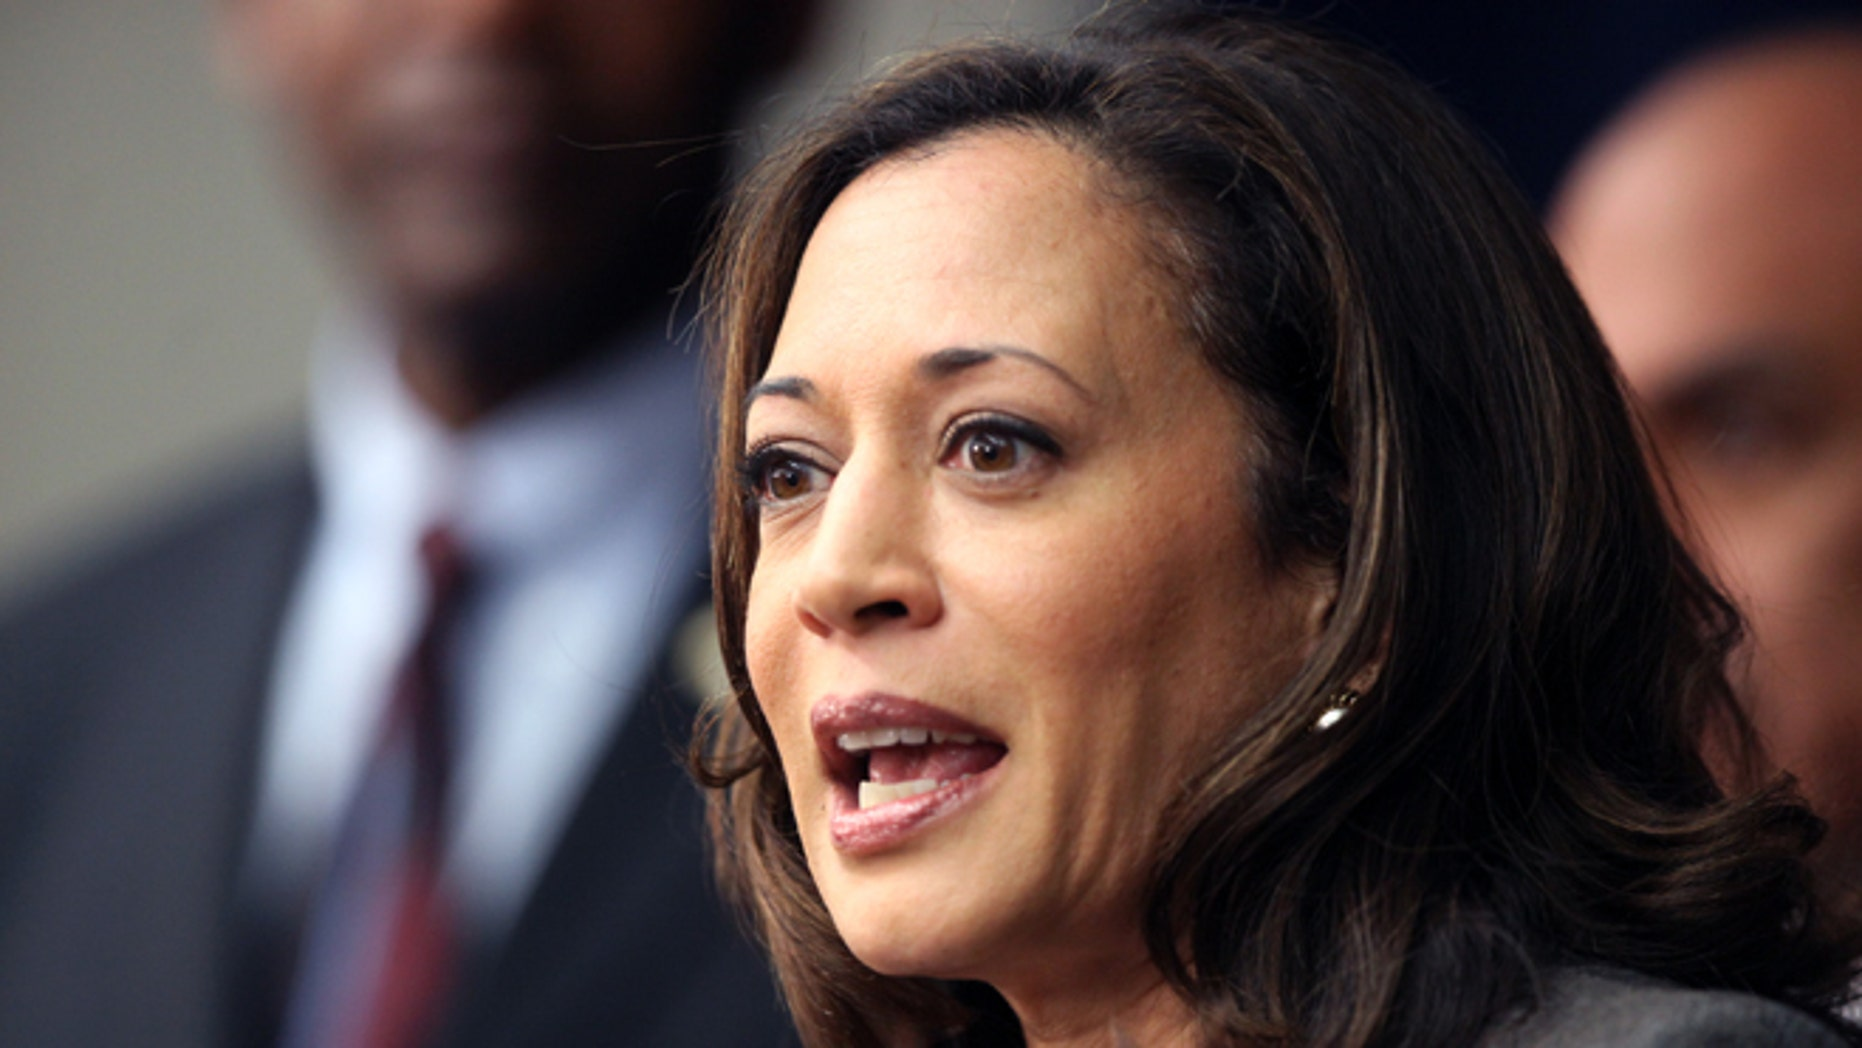 Nov. 16, 2012: California Attorney General Kamala Harris speaks during a news conference in Los Angeles.